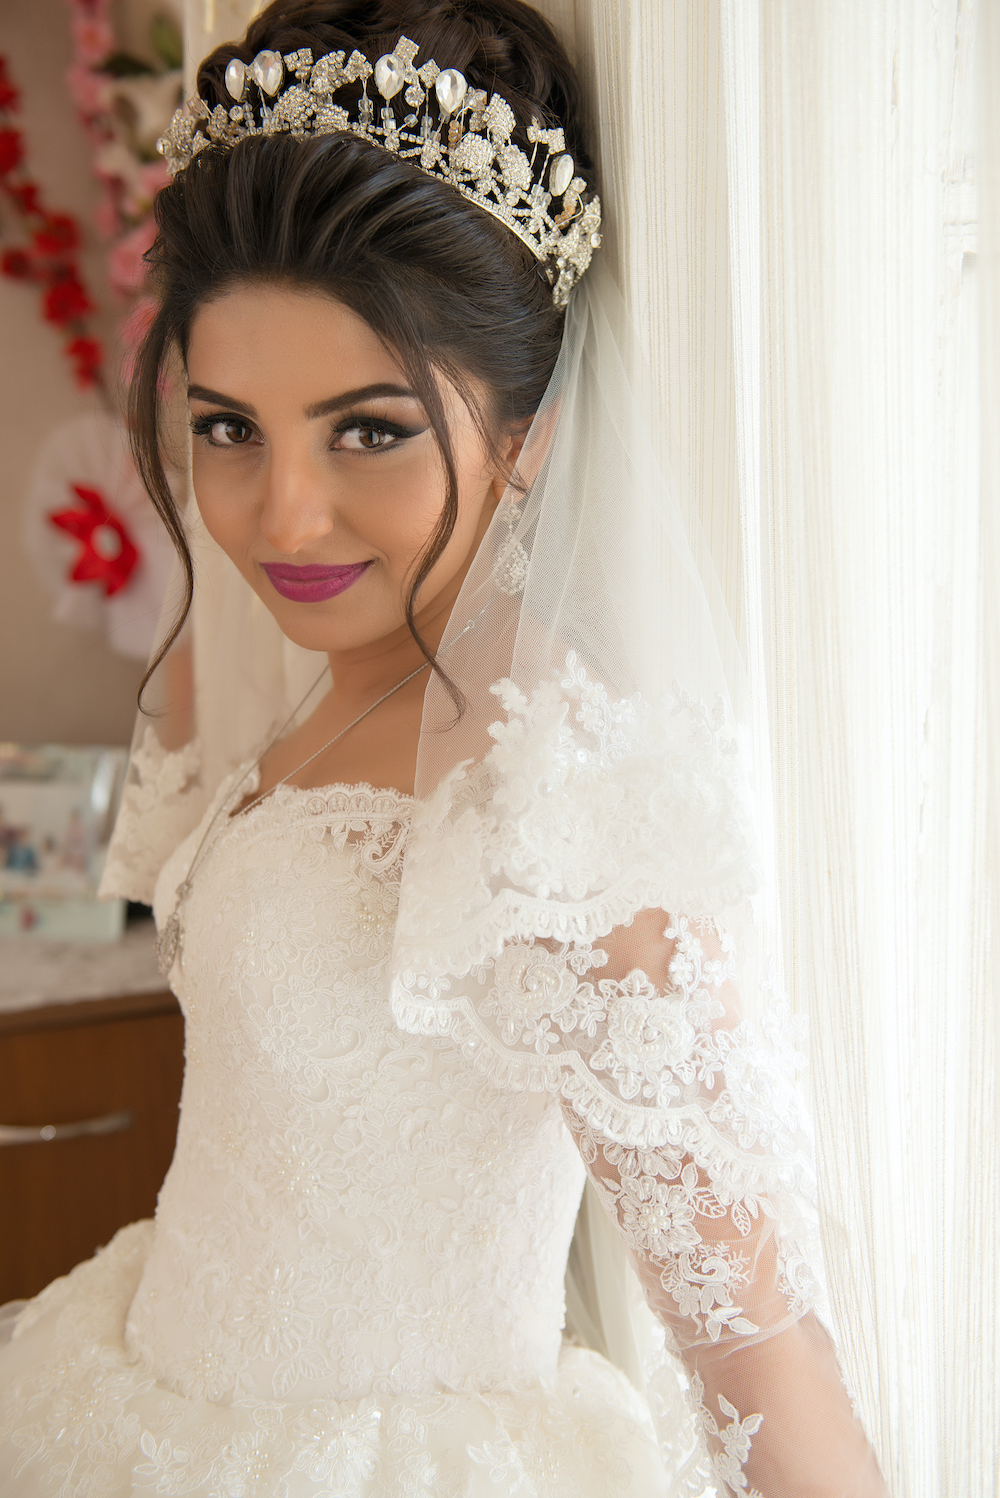 Beautiful bride with updo and wedding hairpiece.